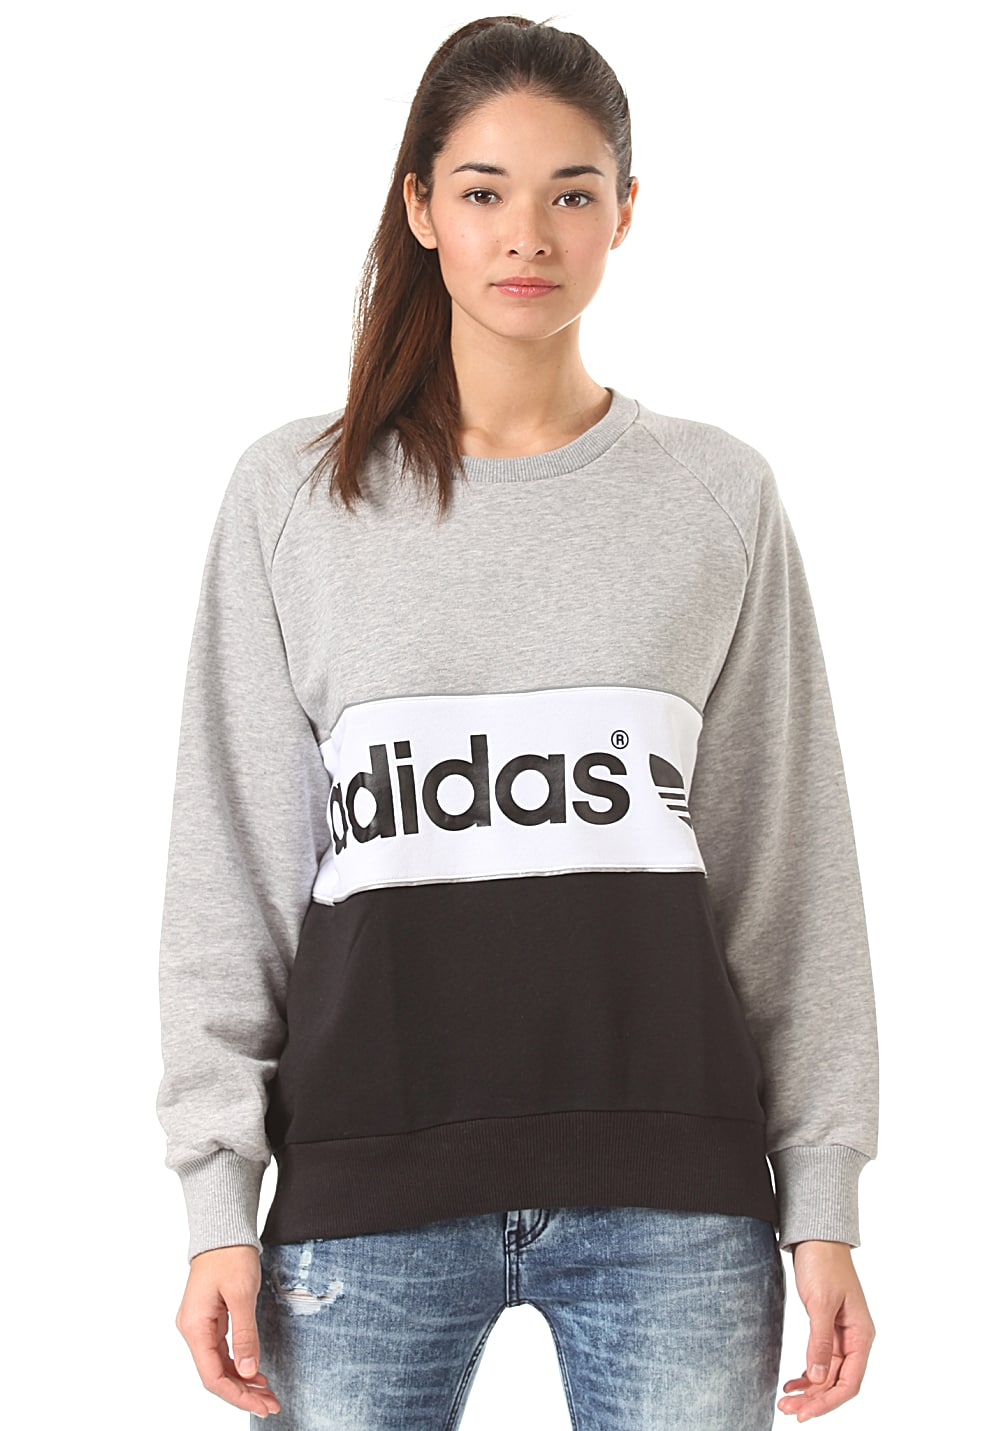 adidas city sweatshirt f r damen grau planet sports. Black Bedroom Furniture Sets. Home Design Ideas